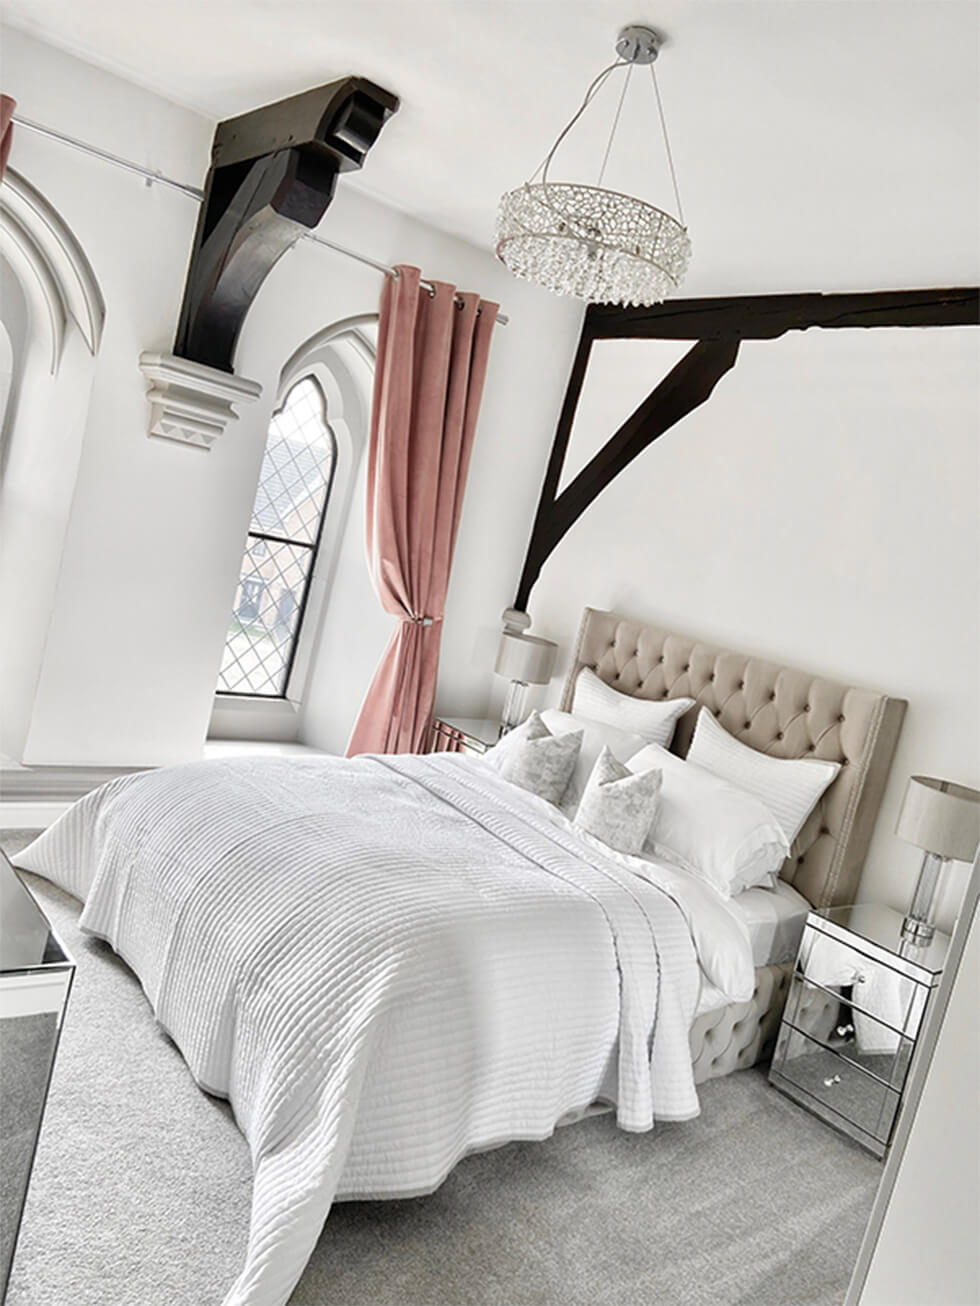 grey bedroom with cosy bedding and luxurious chandelier